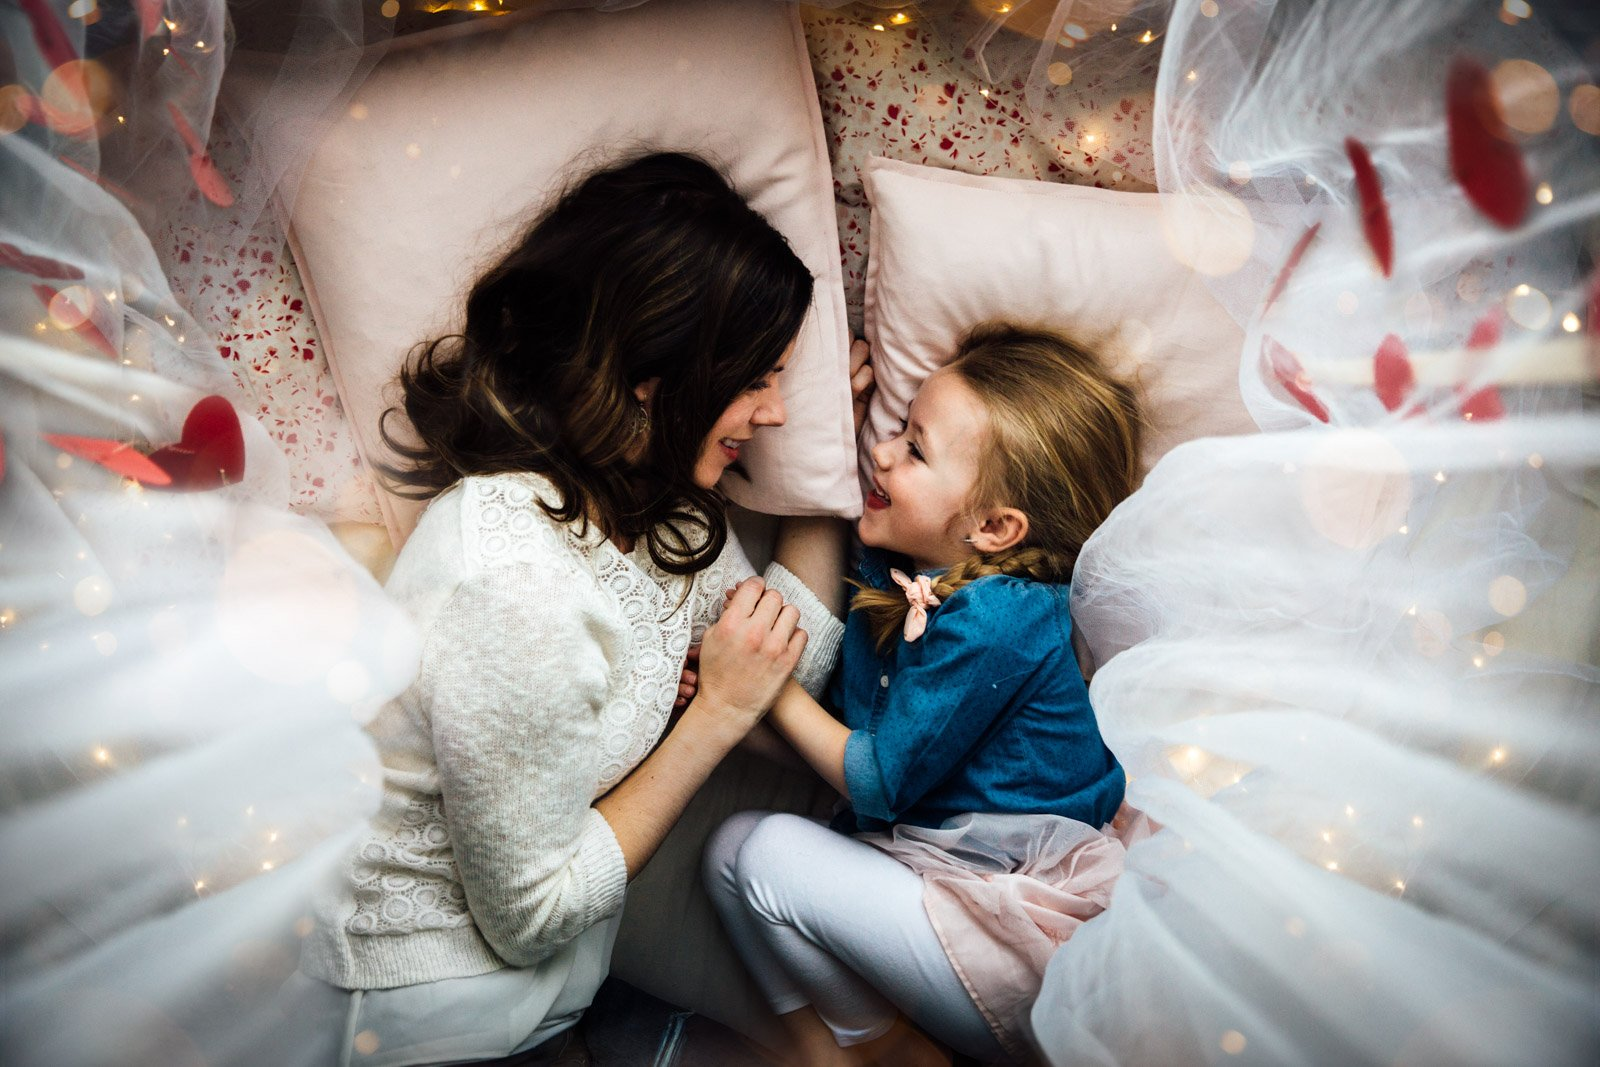 Julia Audoux-mom-daughter-snuggling-in-bed_julieaudoux